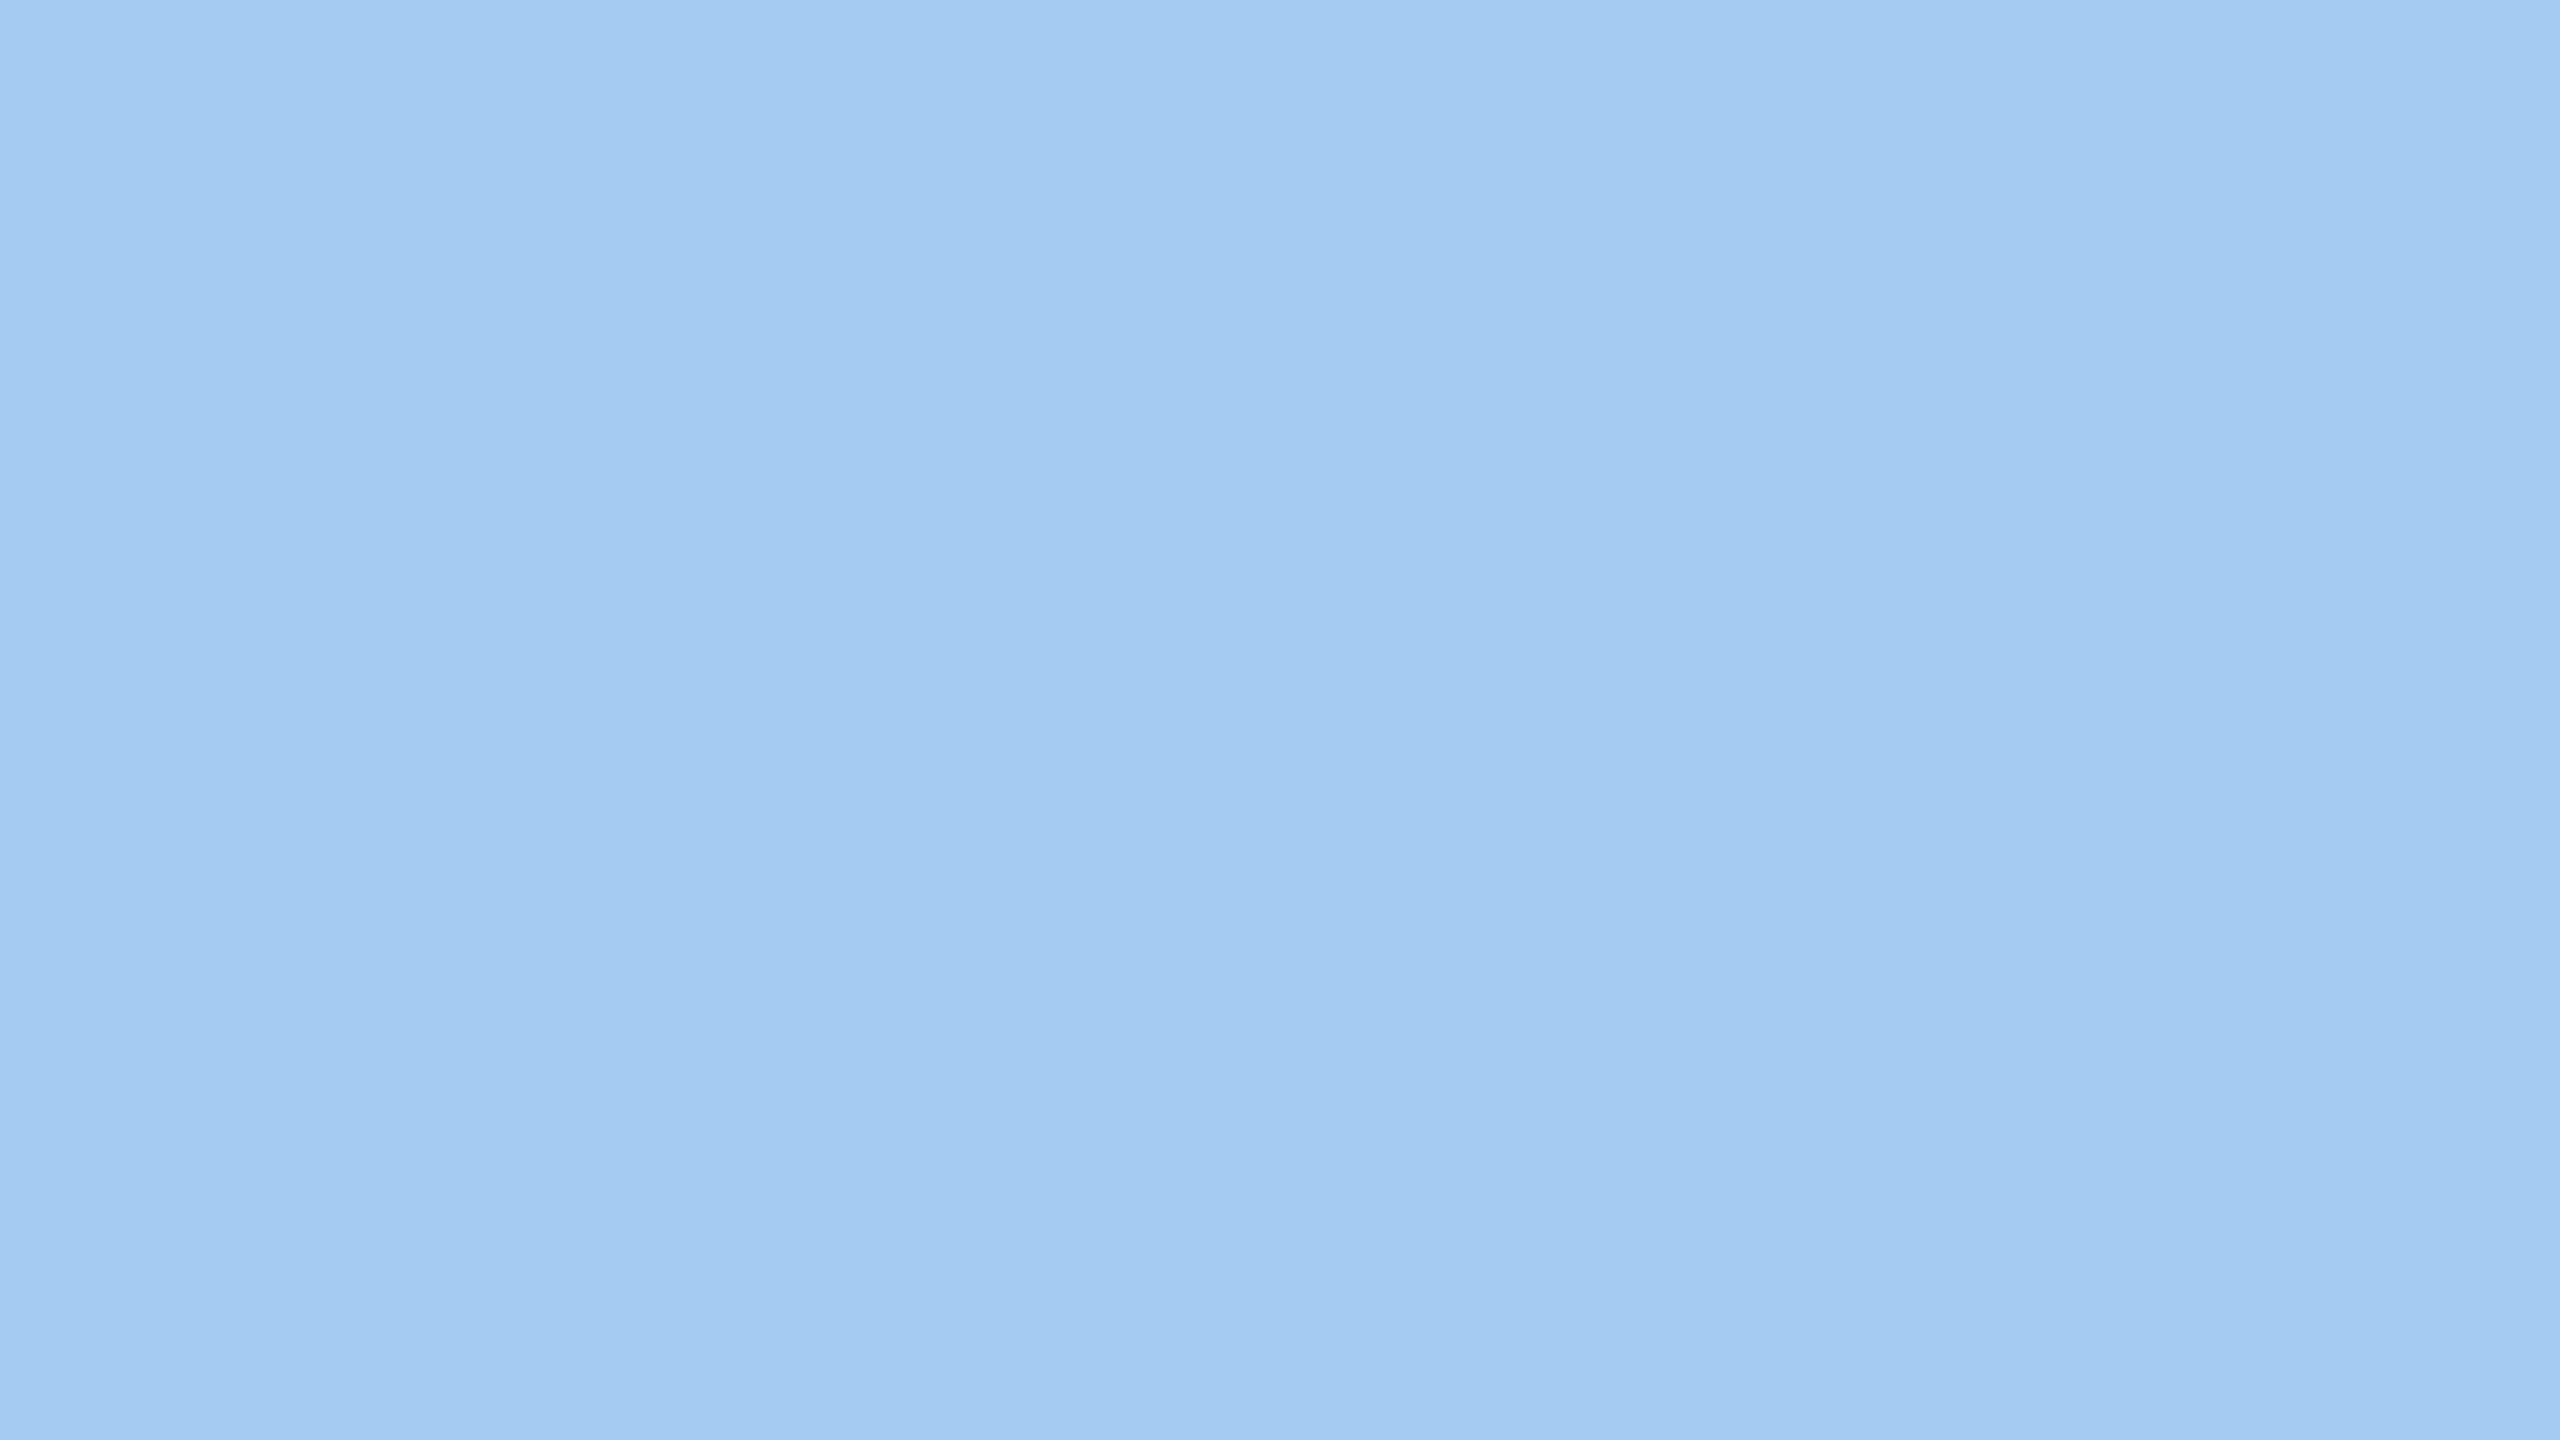 2560x1440 Baby Blue Eyes Solid Color Background